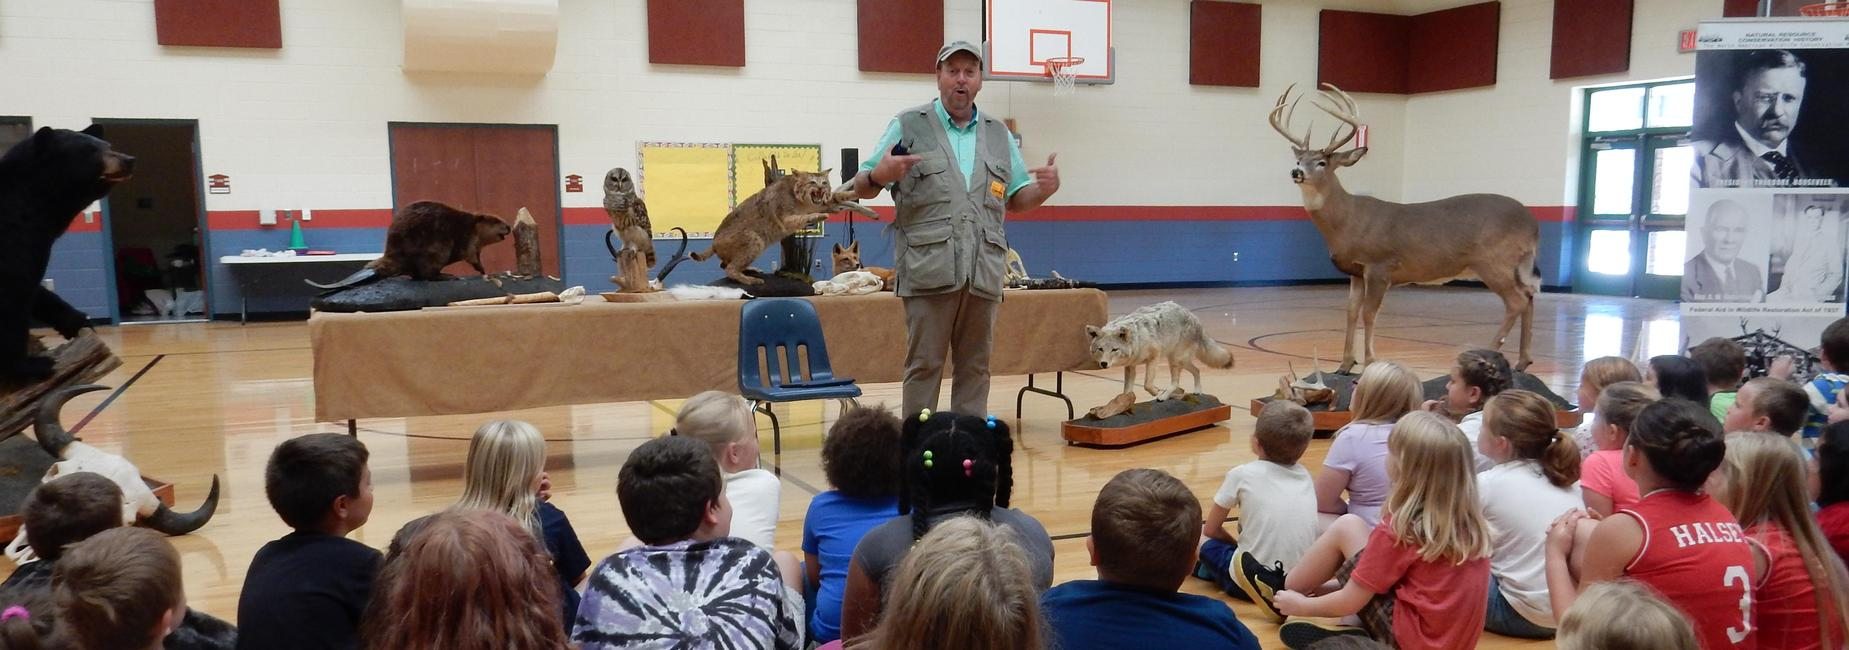 A representative from the Ward Burton Wildlife Foundation, shown with various mounted animals, talks to student assembly